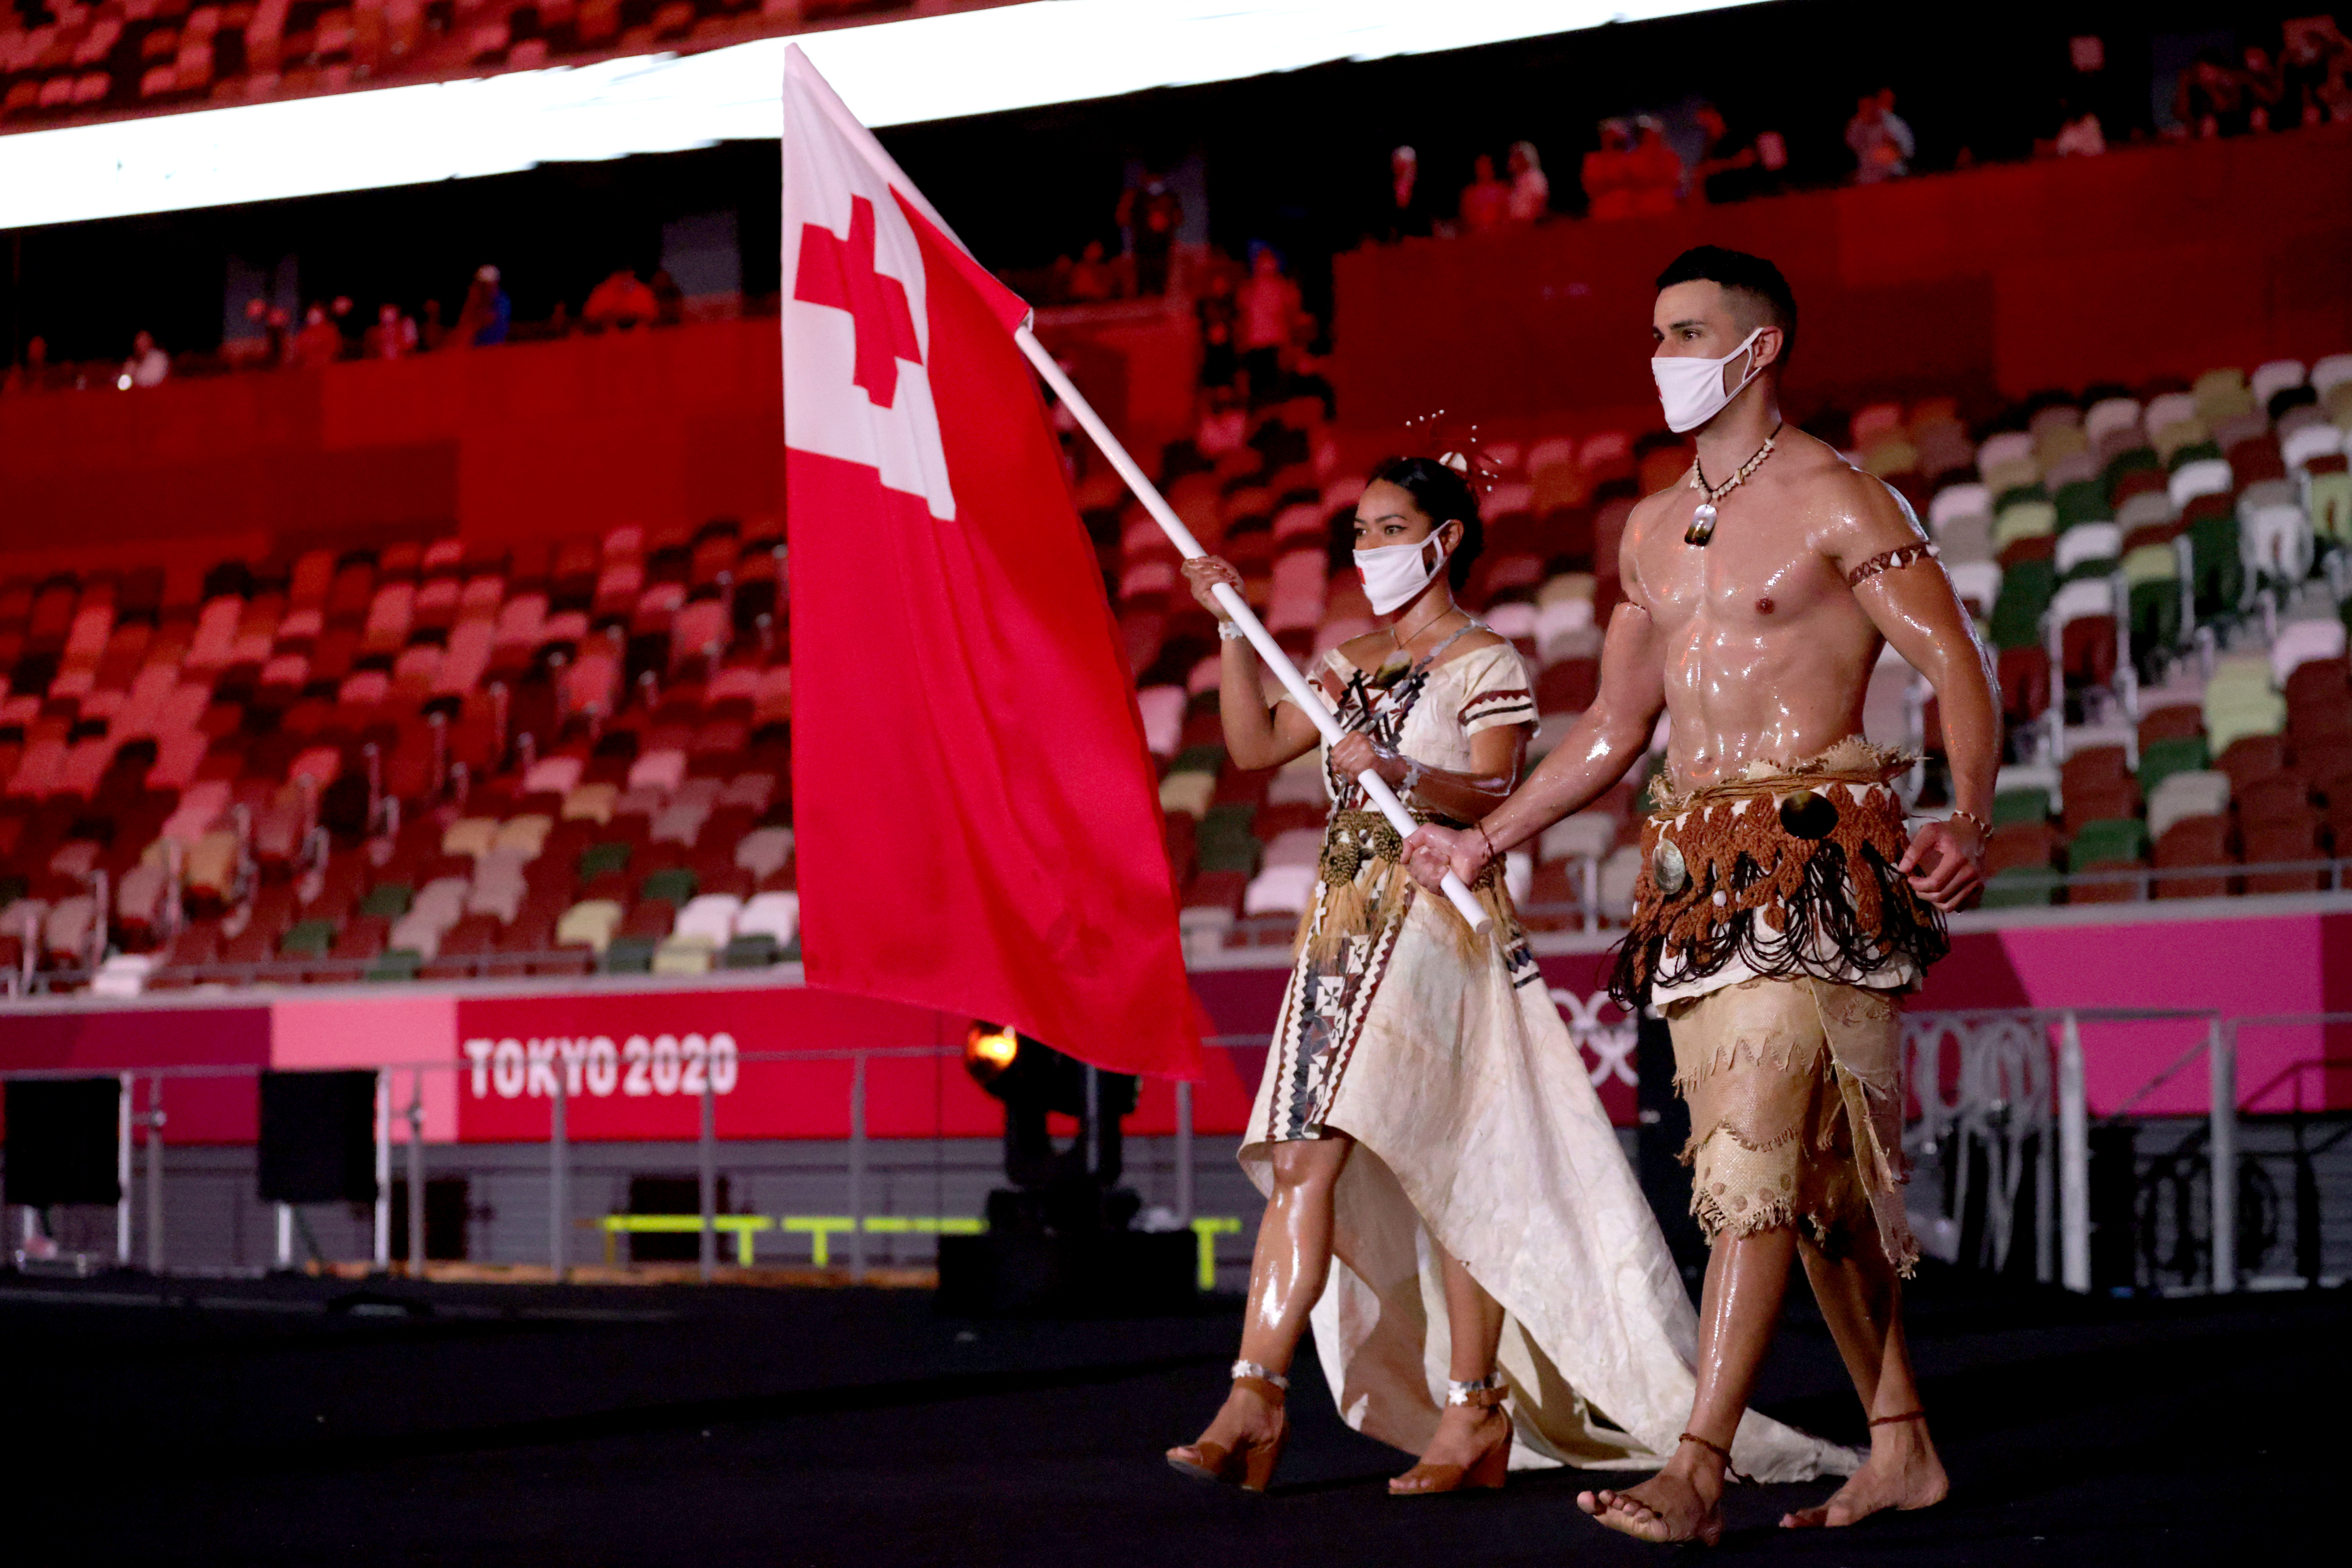 Flag bearers Malia Paseka and Pita Taufatofua of Team Tonga lead their team during the Opening Ceremony of the Tokyo 2020 Olympic Games at Olympic Stadium on July 23, 2021 in Tokyo, Japan.